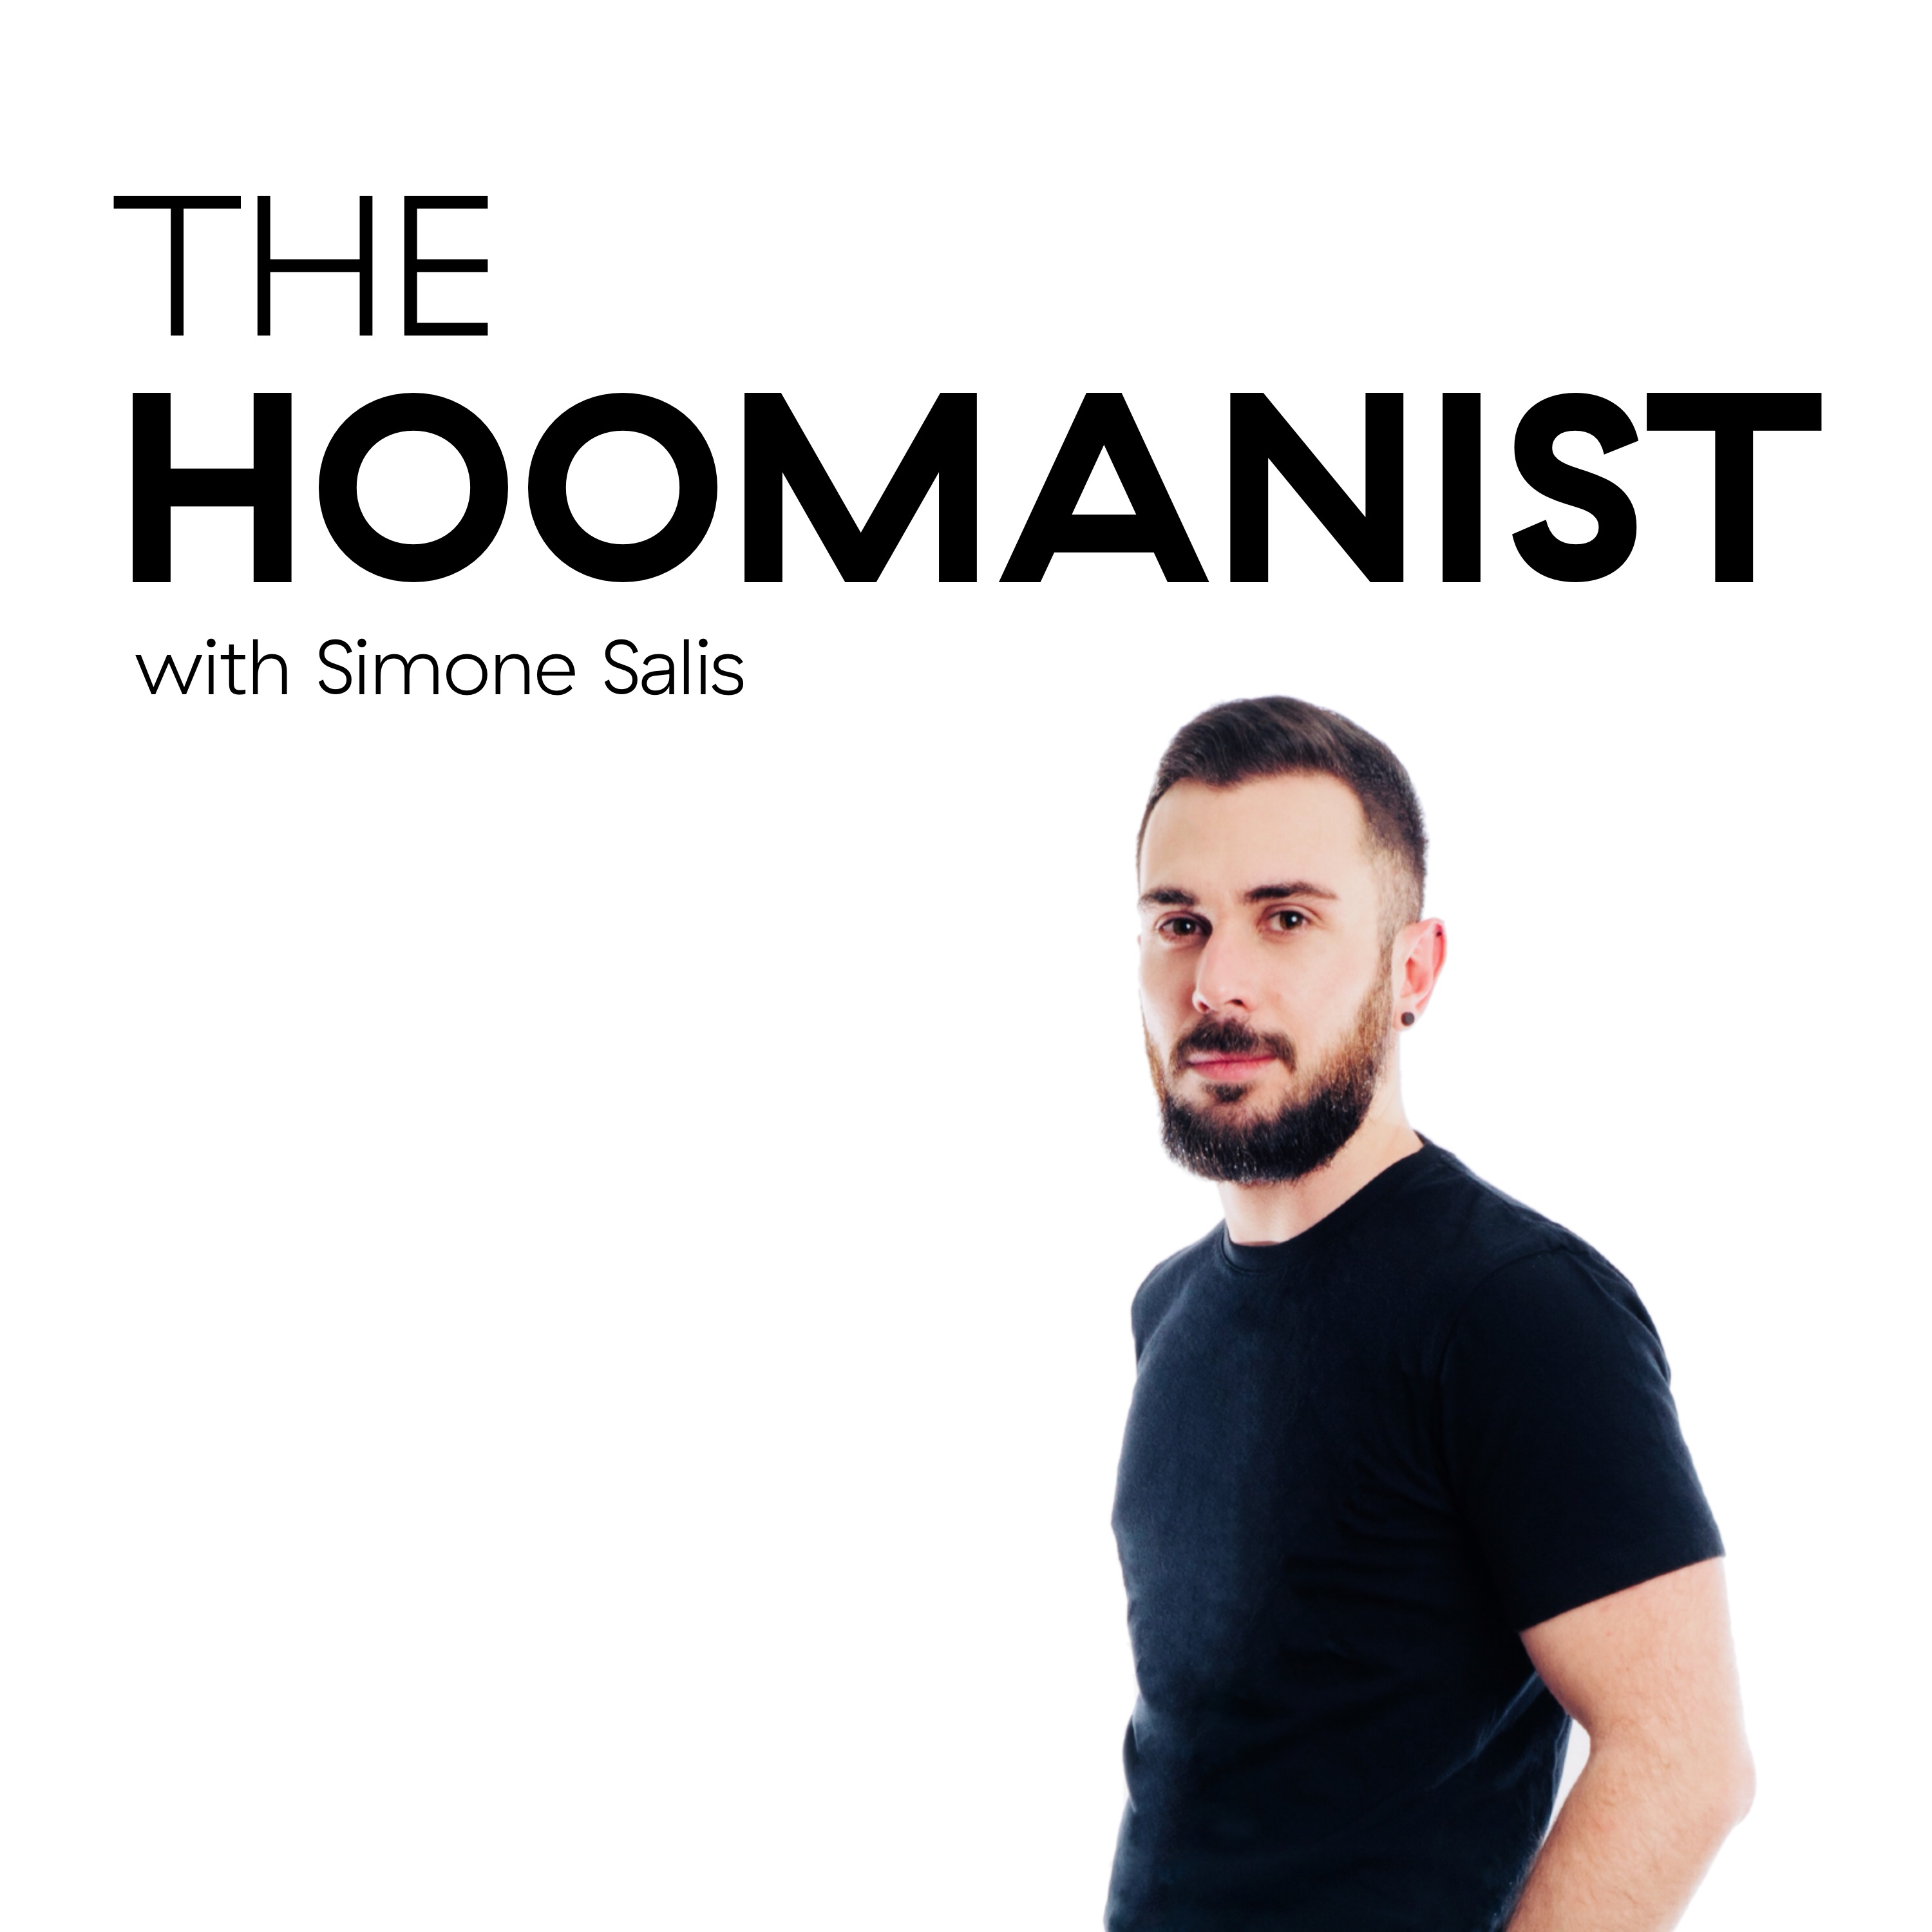 Caption: The Hoomanist